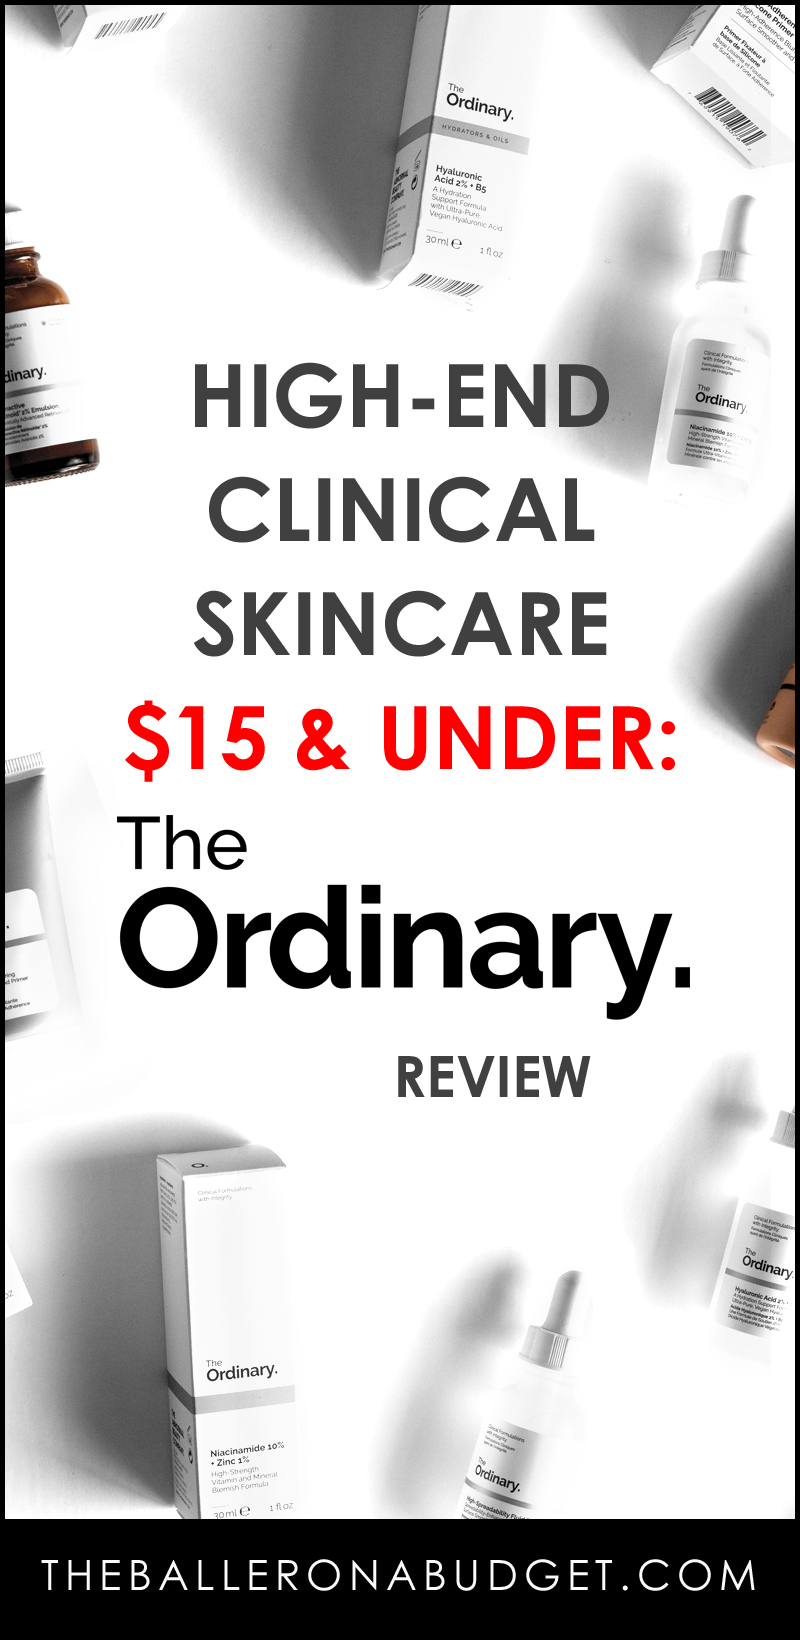 The Ordinary offers high-end clinical skincare and beauty products at drugstore prices. We're talking $4-$15! Here's the review from a licensed esthetician and skincare specialist. - www.theballeronabudget.com